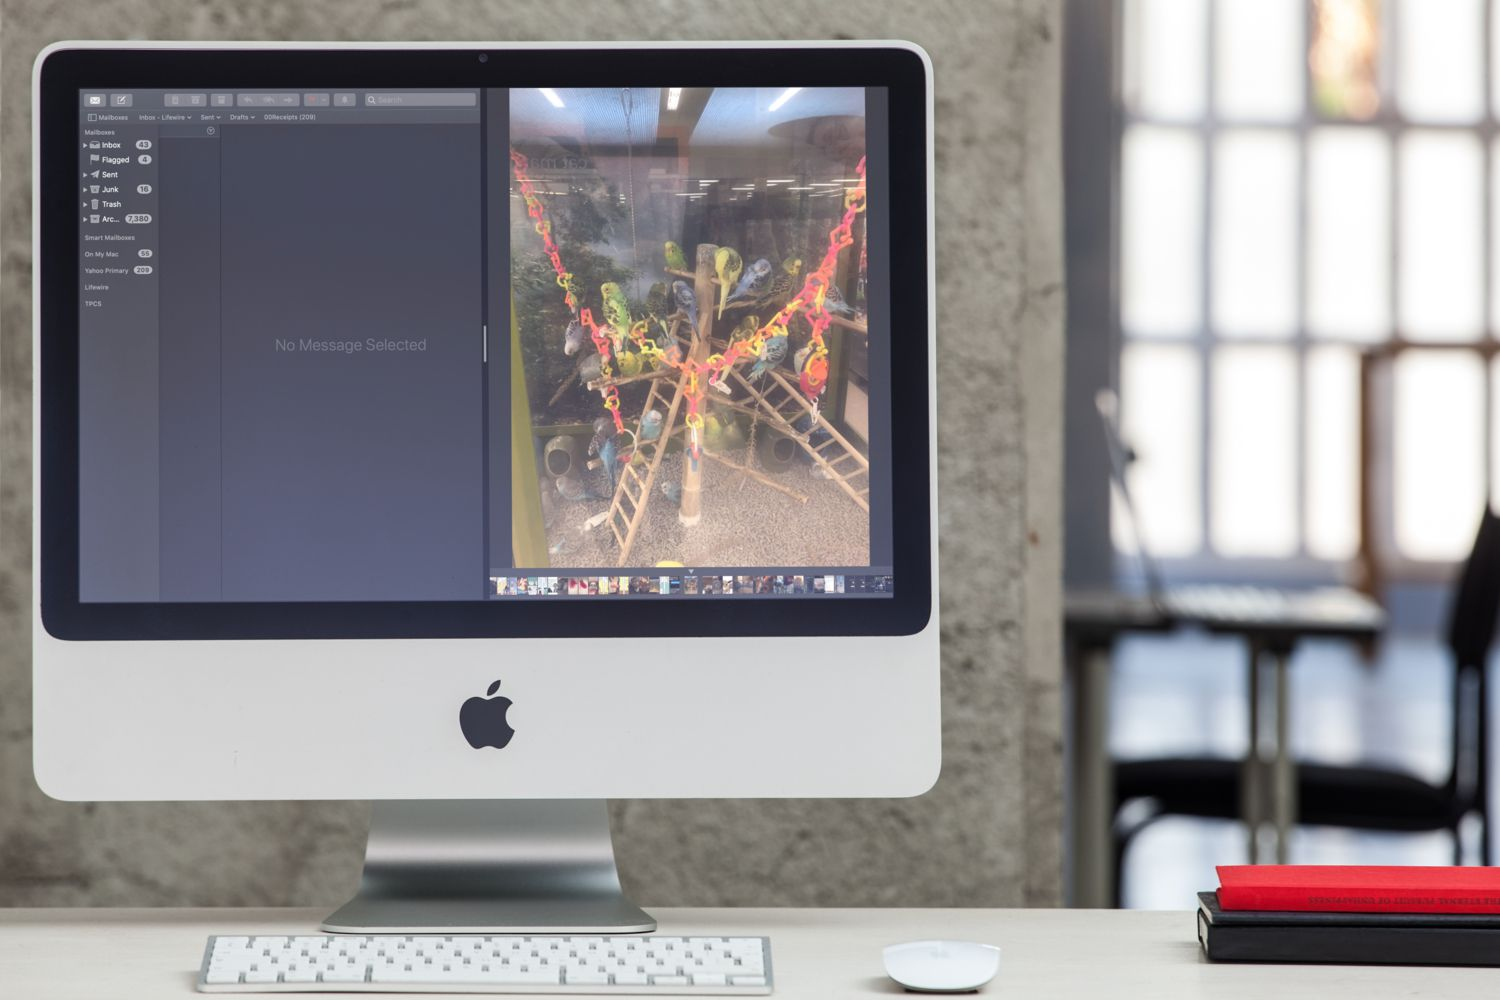 How to Use Split Screen on a Mac